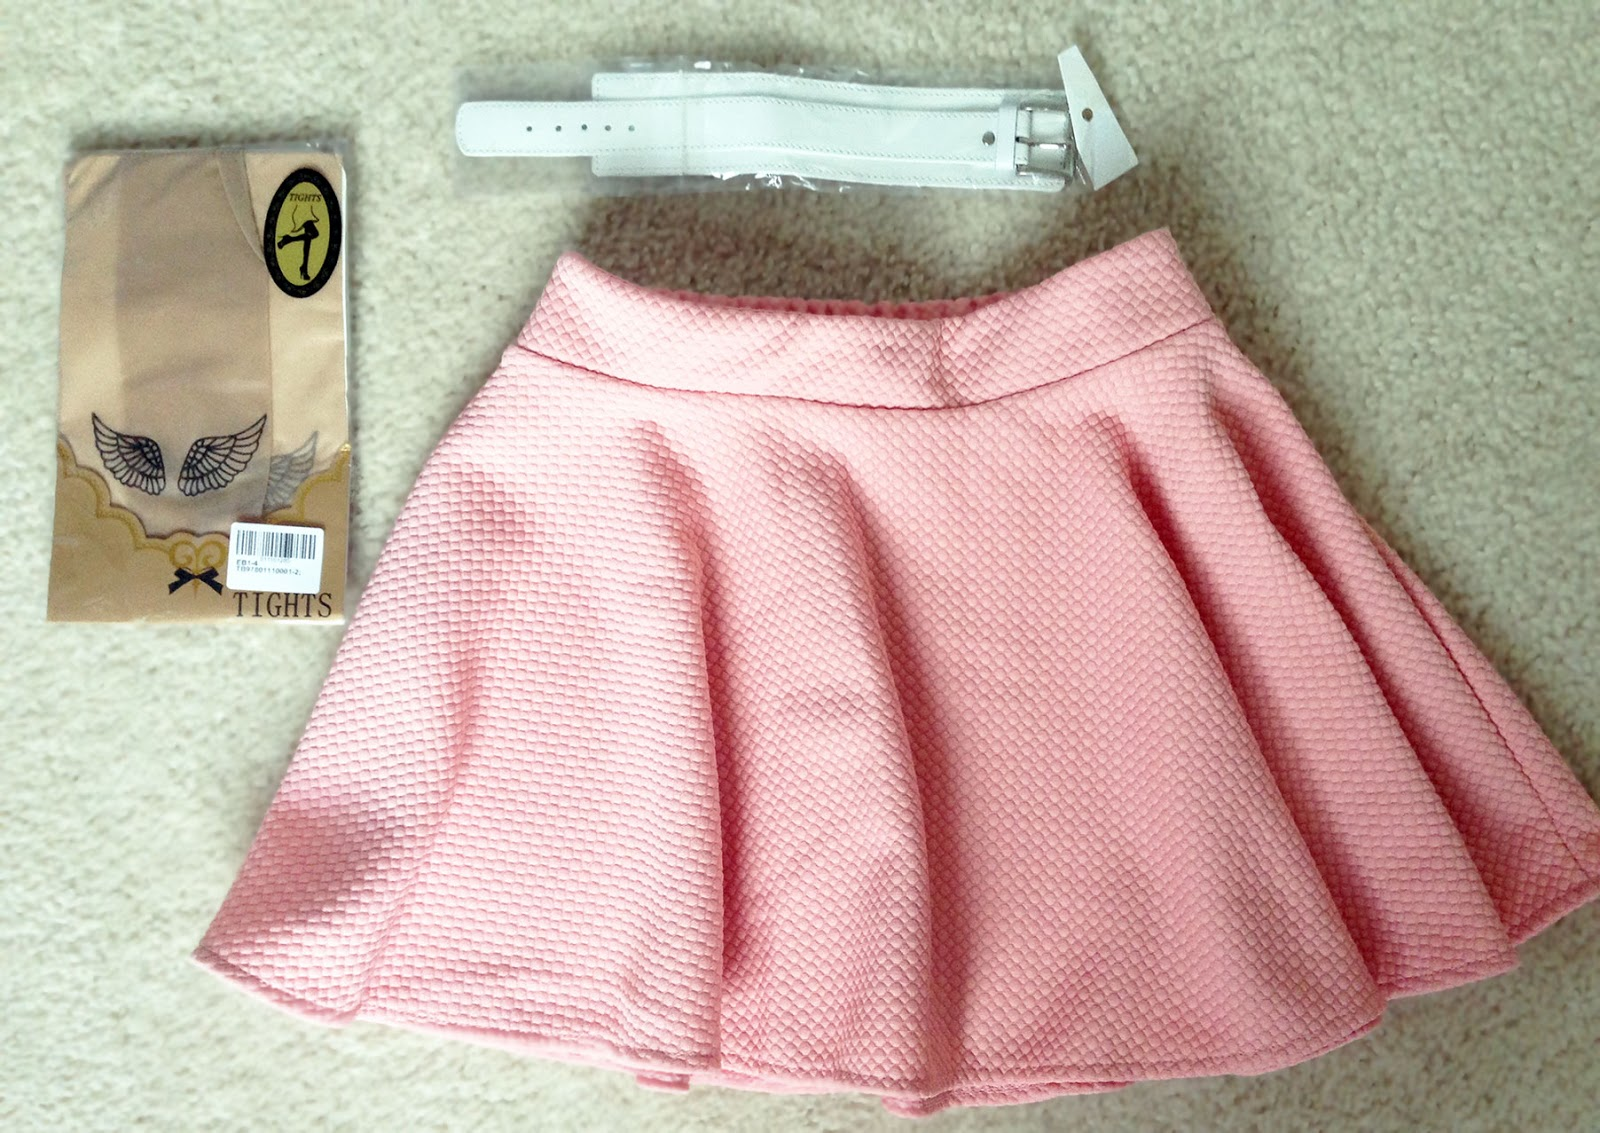 Chicnova pastel pink pure color skater skirt, white leather bracelet, and tattoo printed tights laid out on carpet